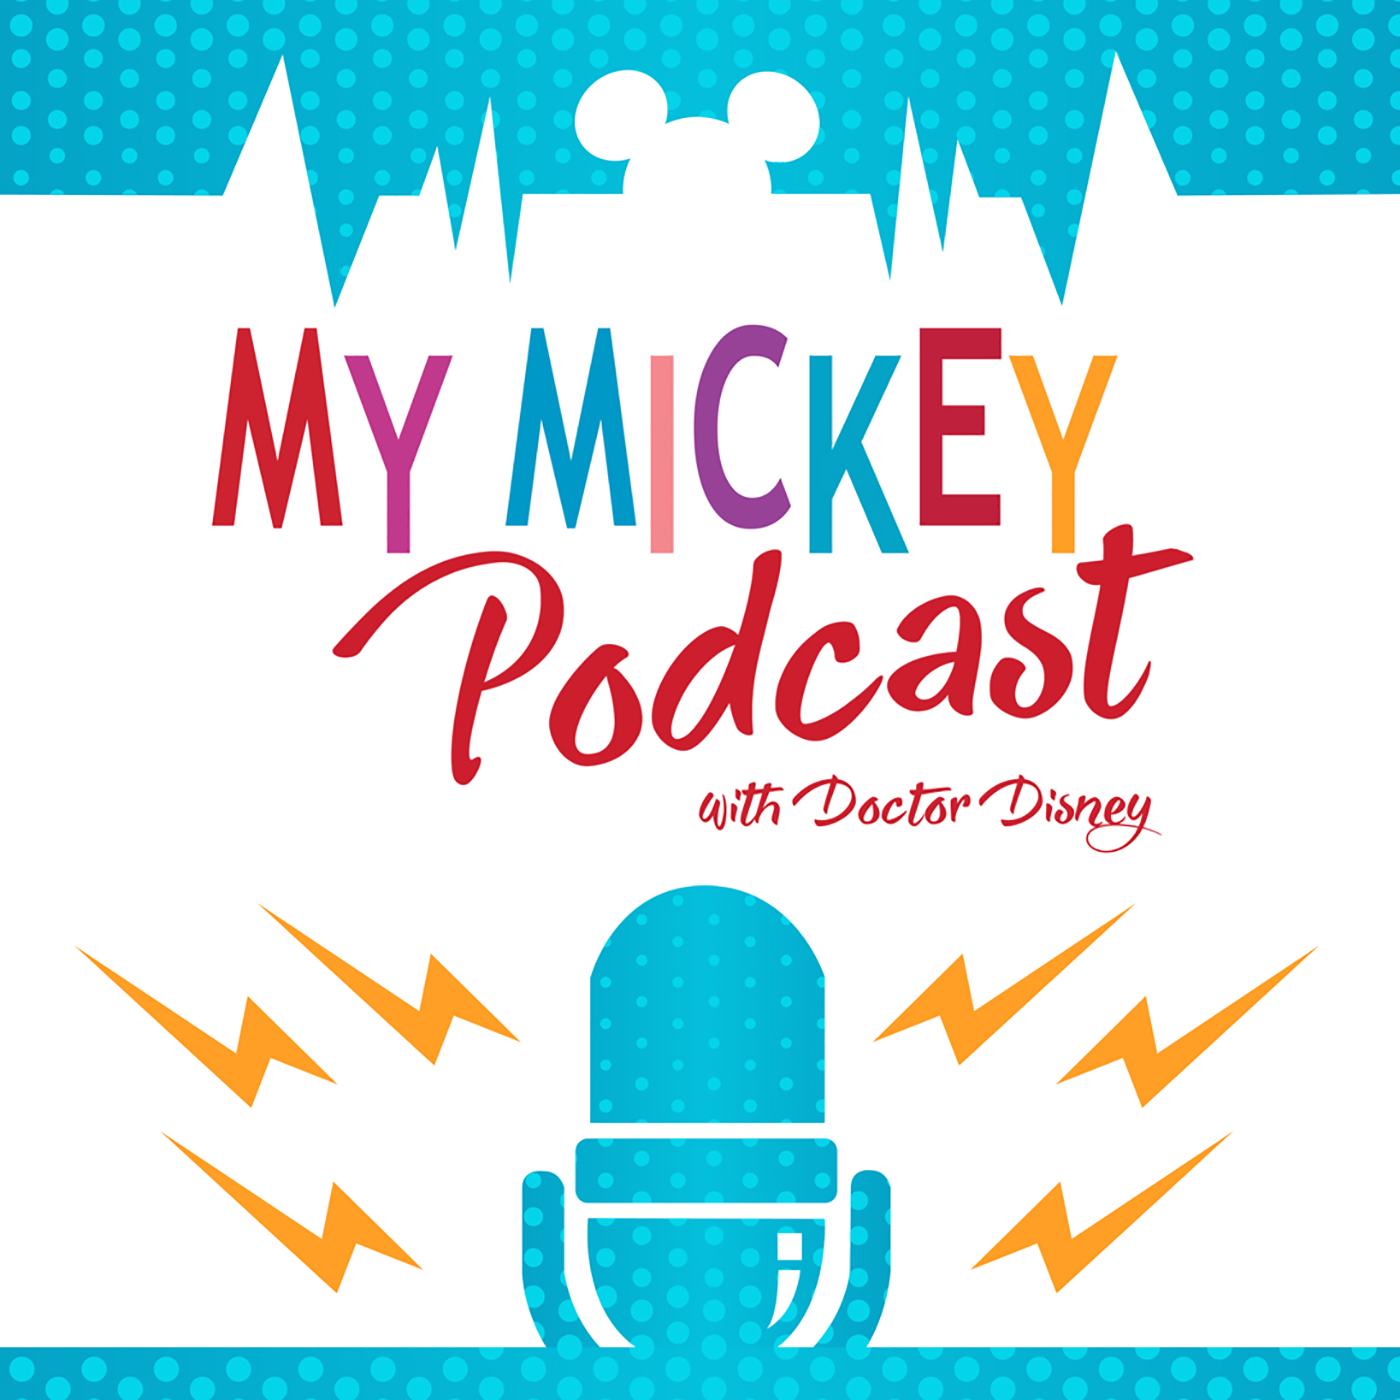 My Mickey Podcast